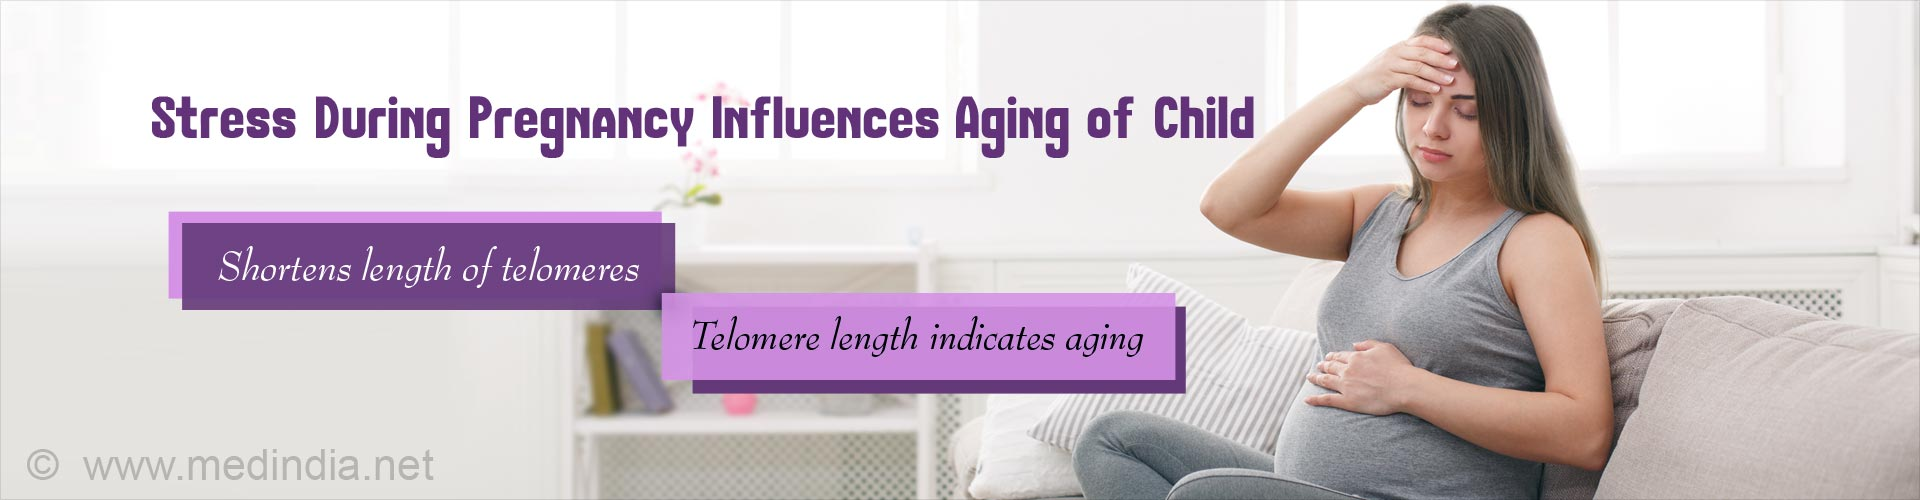 Stress during pregnancy influences aging of child - shortens length of telomeres - telomere length indicates aging